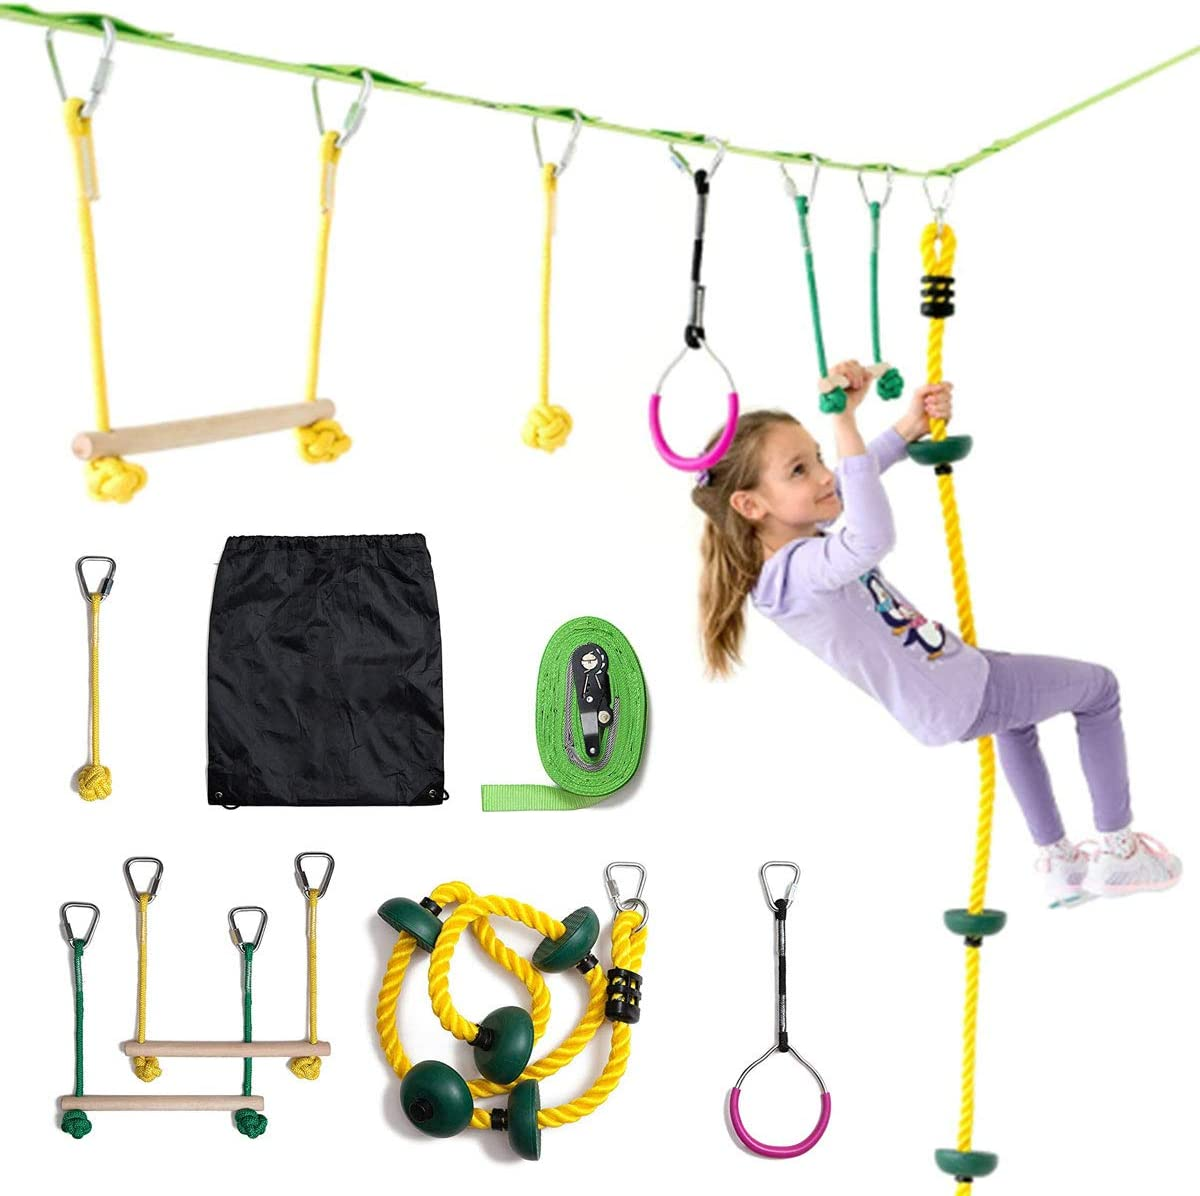 Umeken 56 Feet Slacklines for Adults Children Kids Balance Training Tight Ropes with Tree Protectors Easy Set up Instruction Booklet and Carry Bag Outdoor Backyard Camping Fun